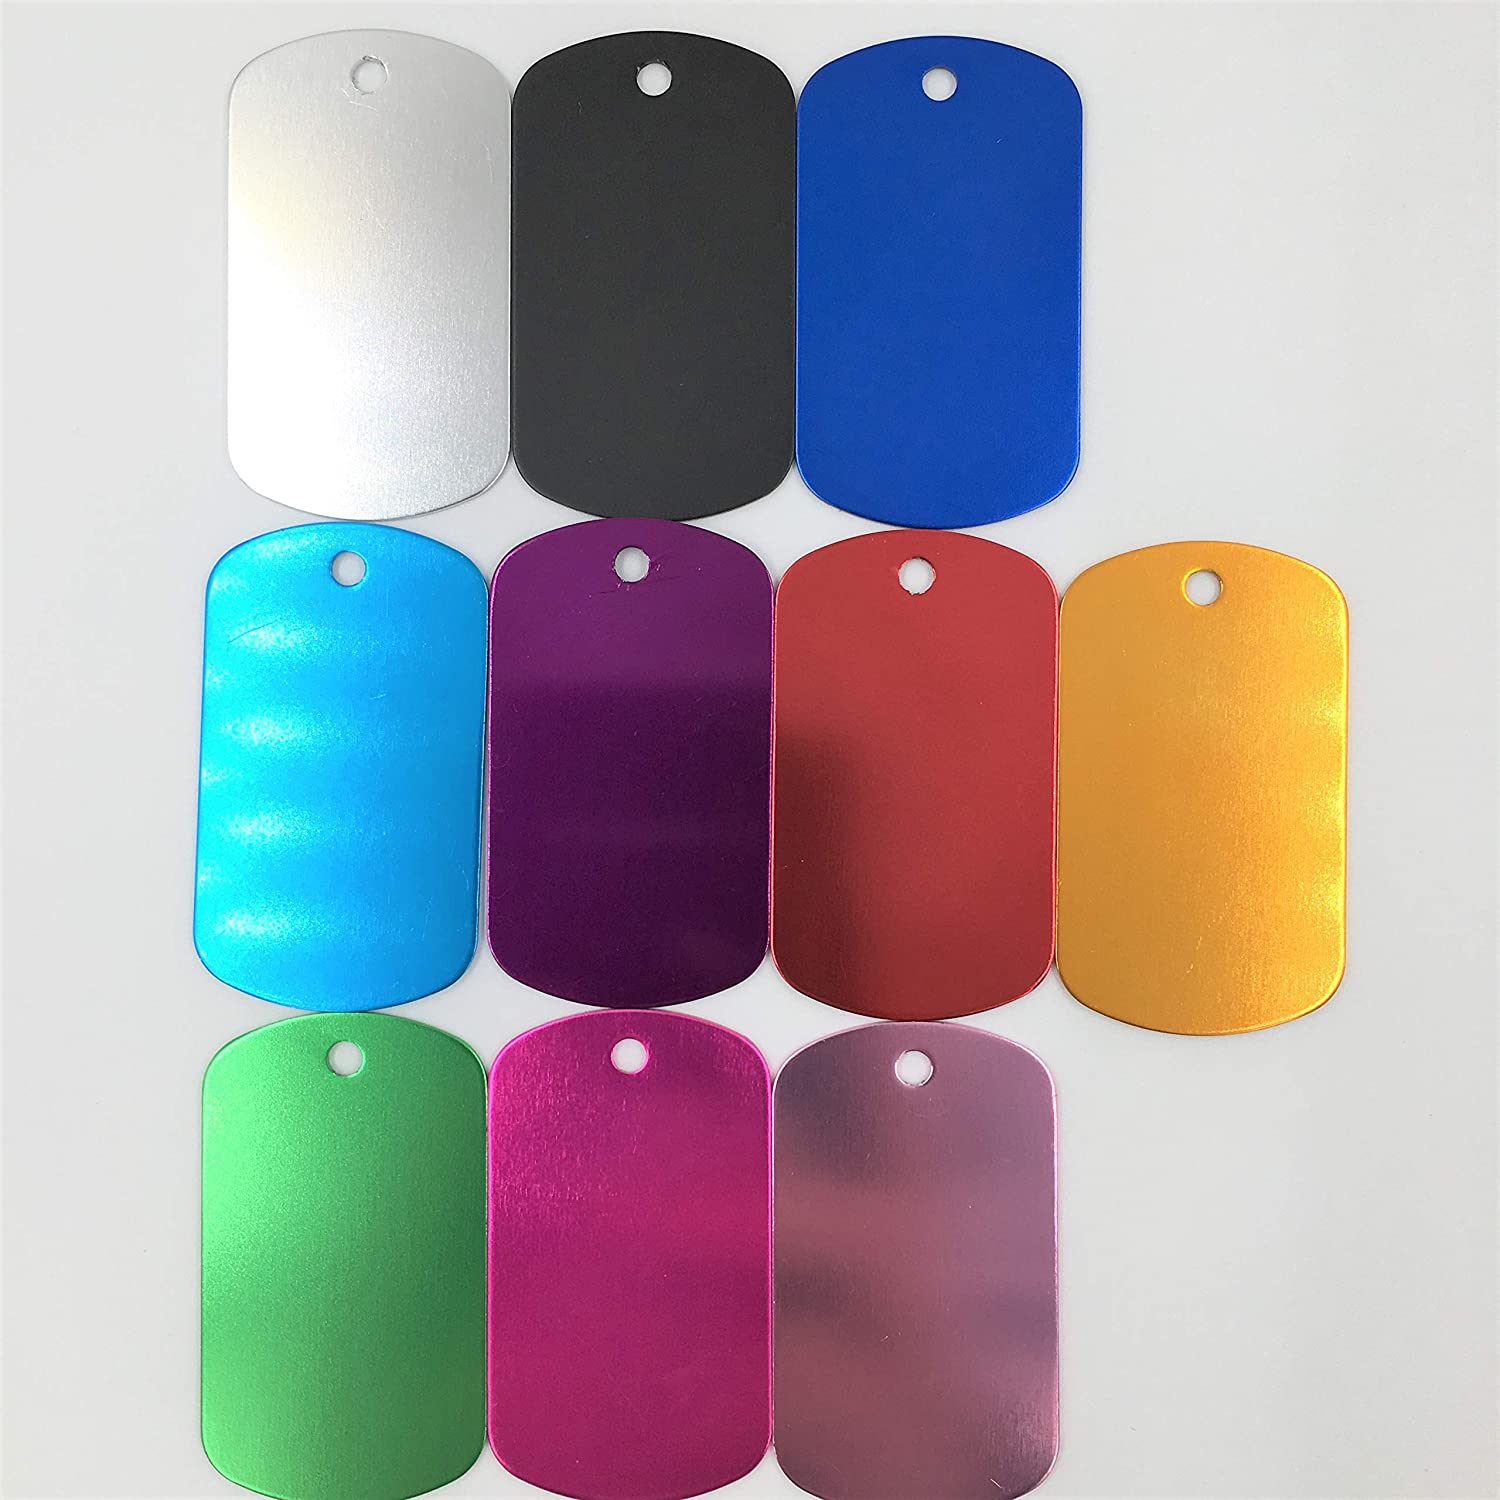 Pack of 10 Colorful Rectangle Anodized Aluminum Stamping Blanks Discs for Craft Tags Color Mix